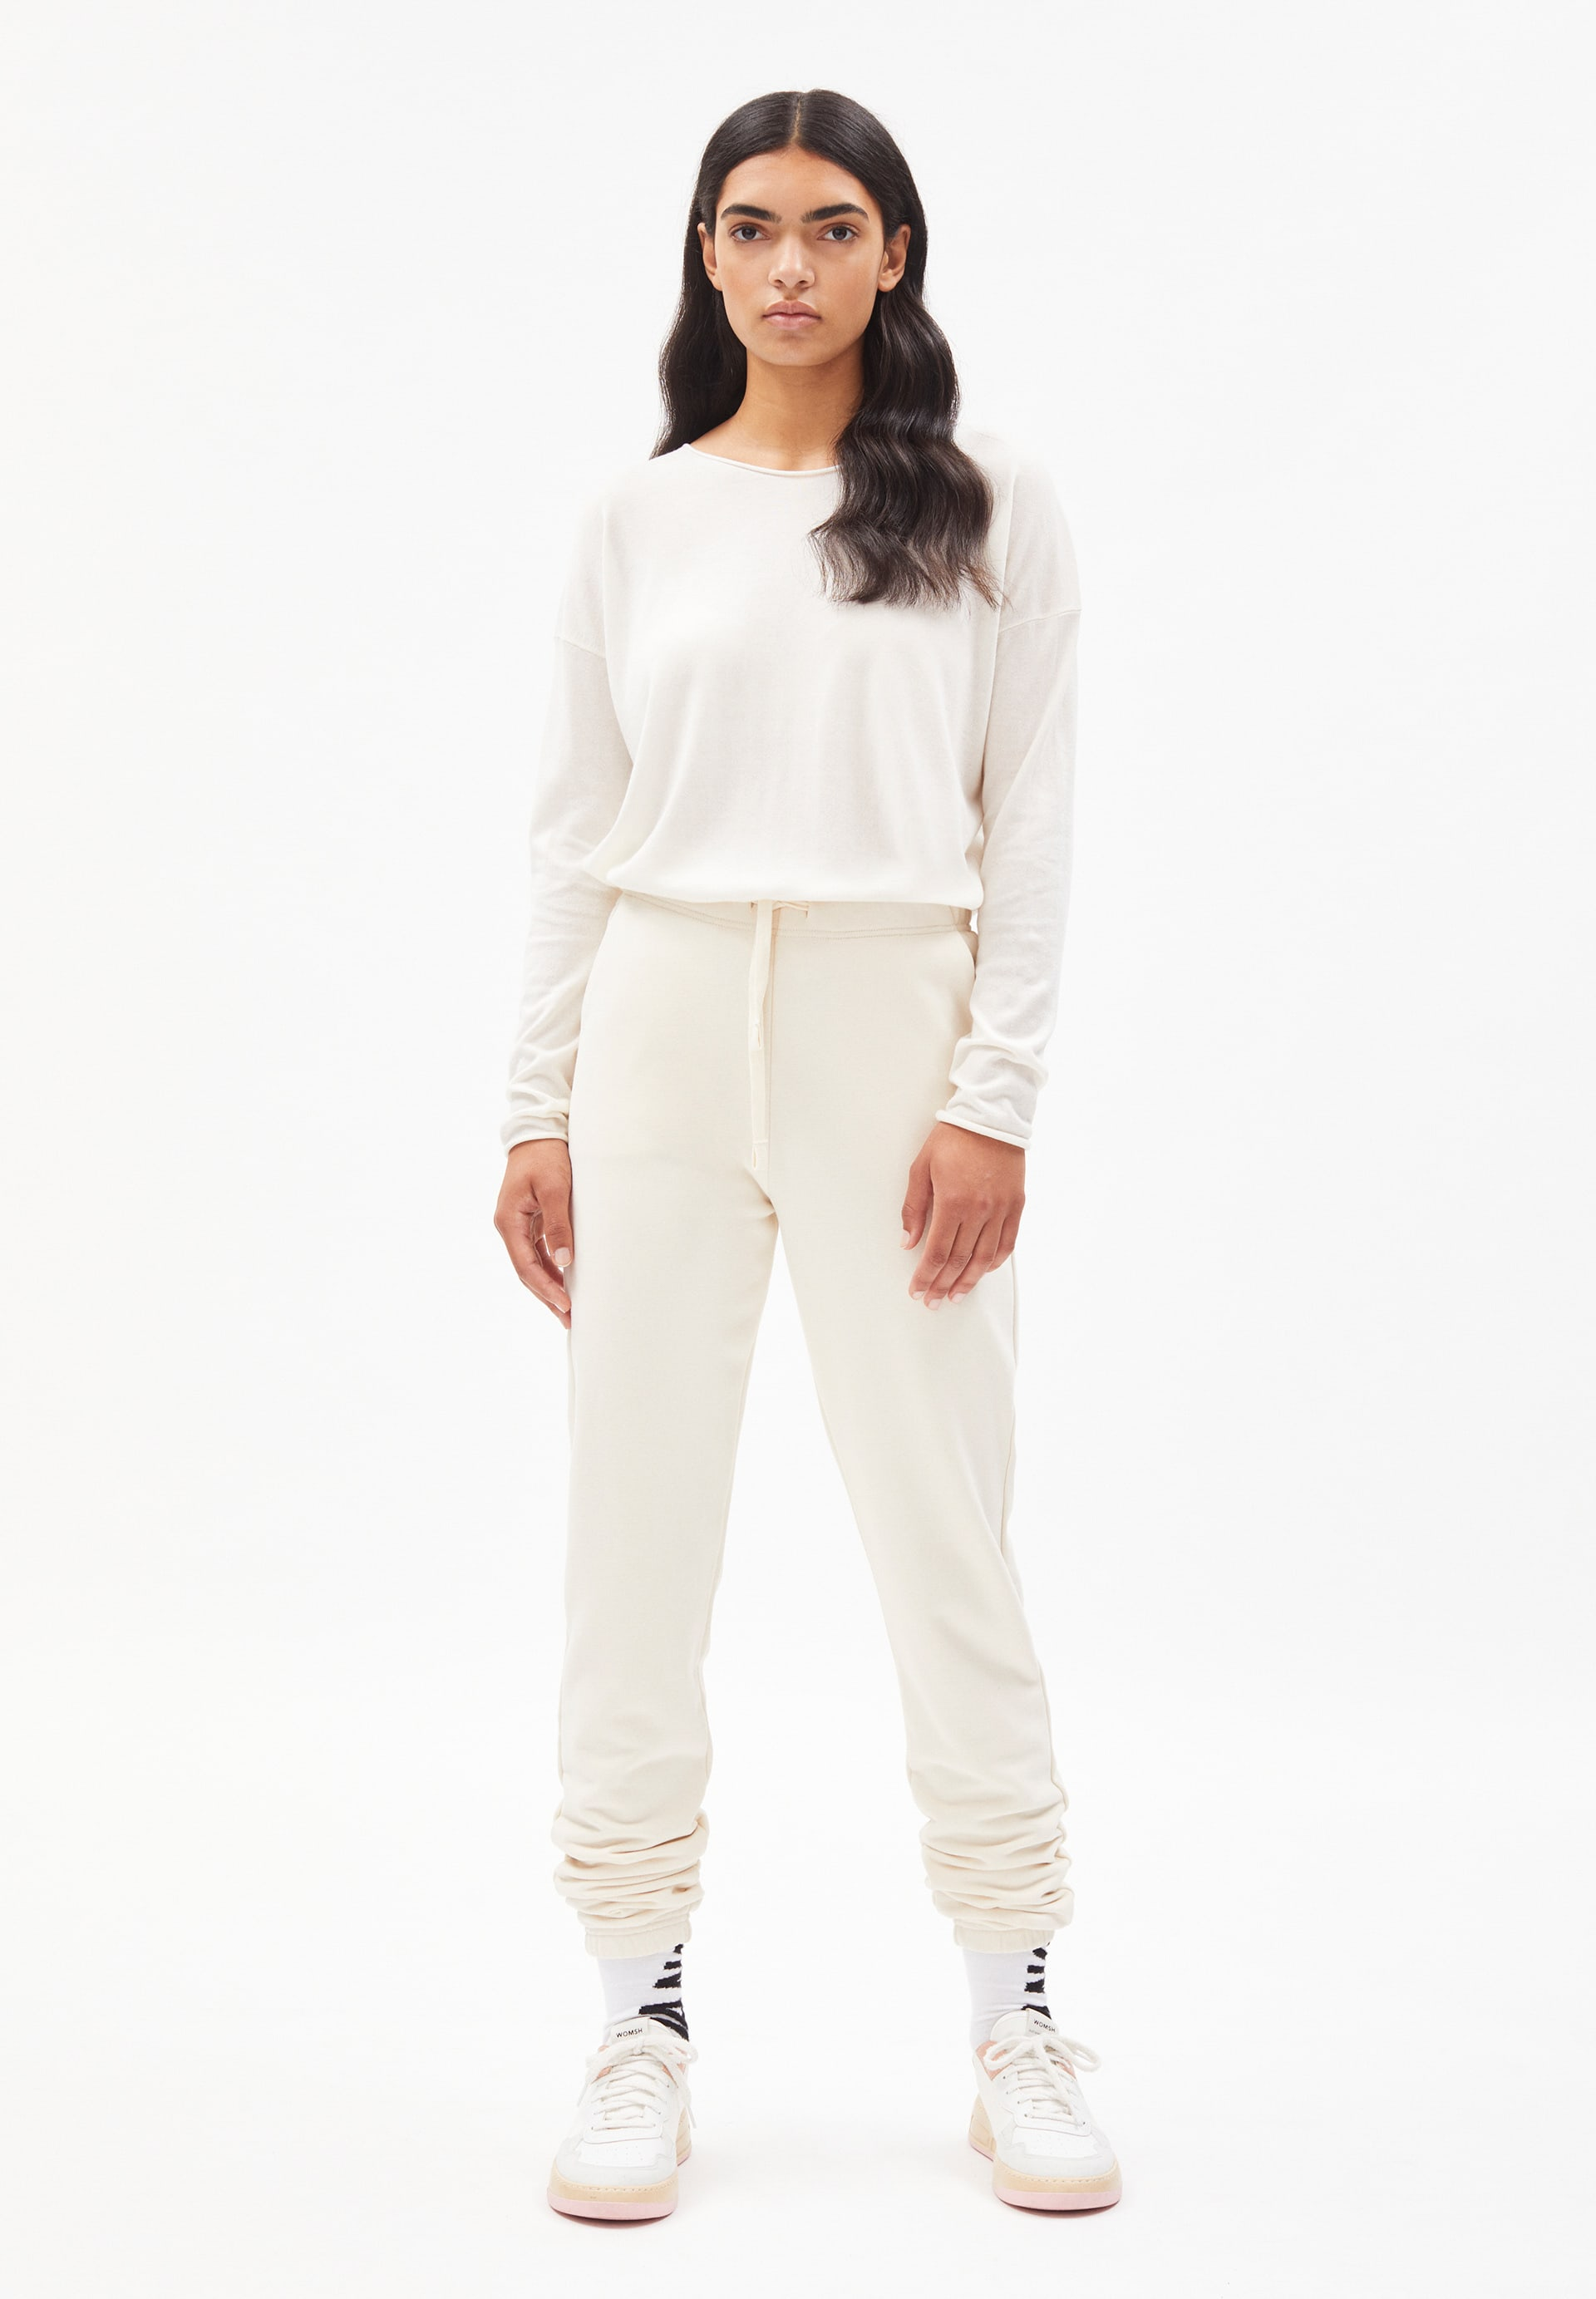 LADAA Sweater made of TENCEL™ Lyocell Mix